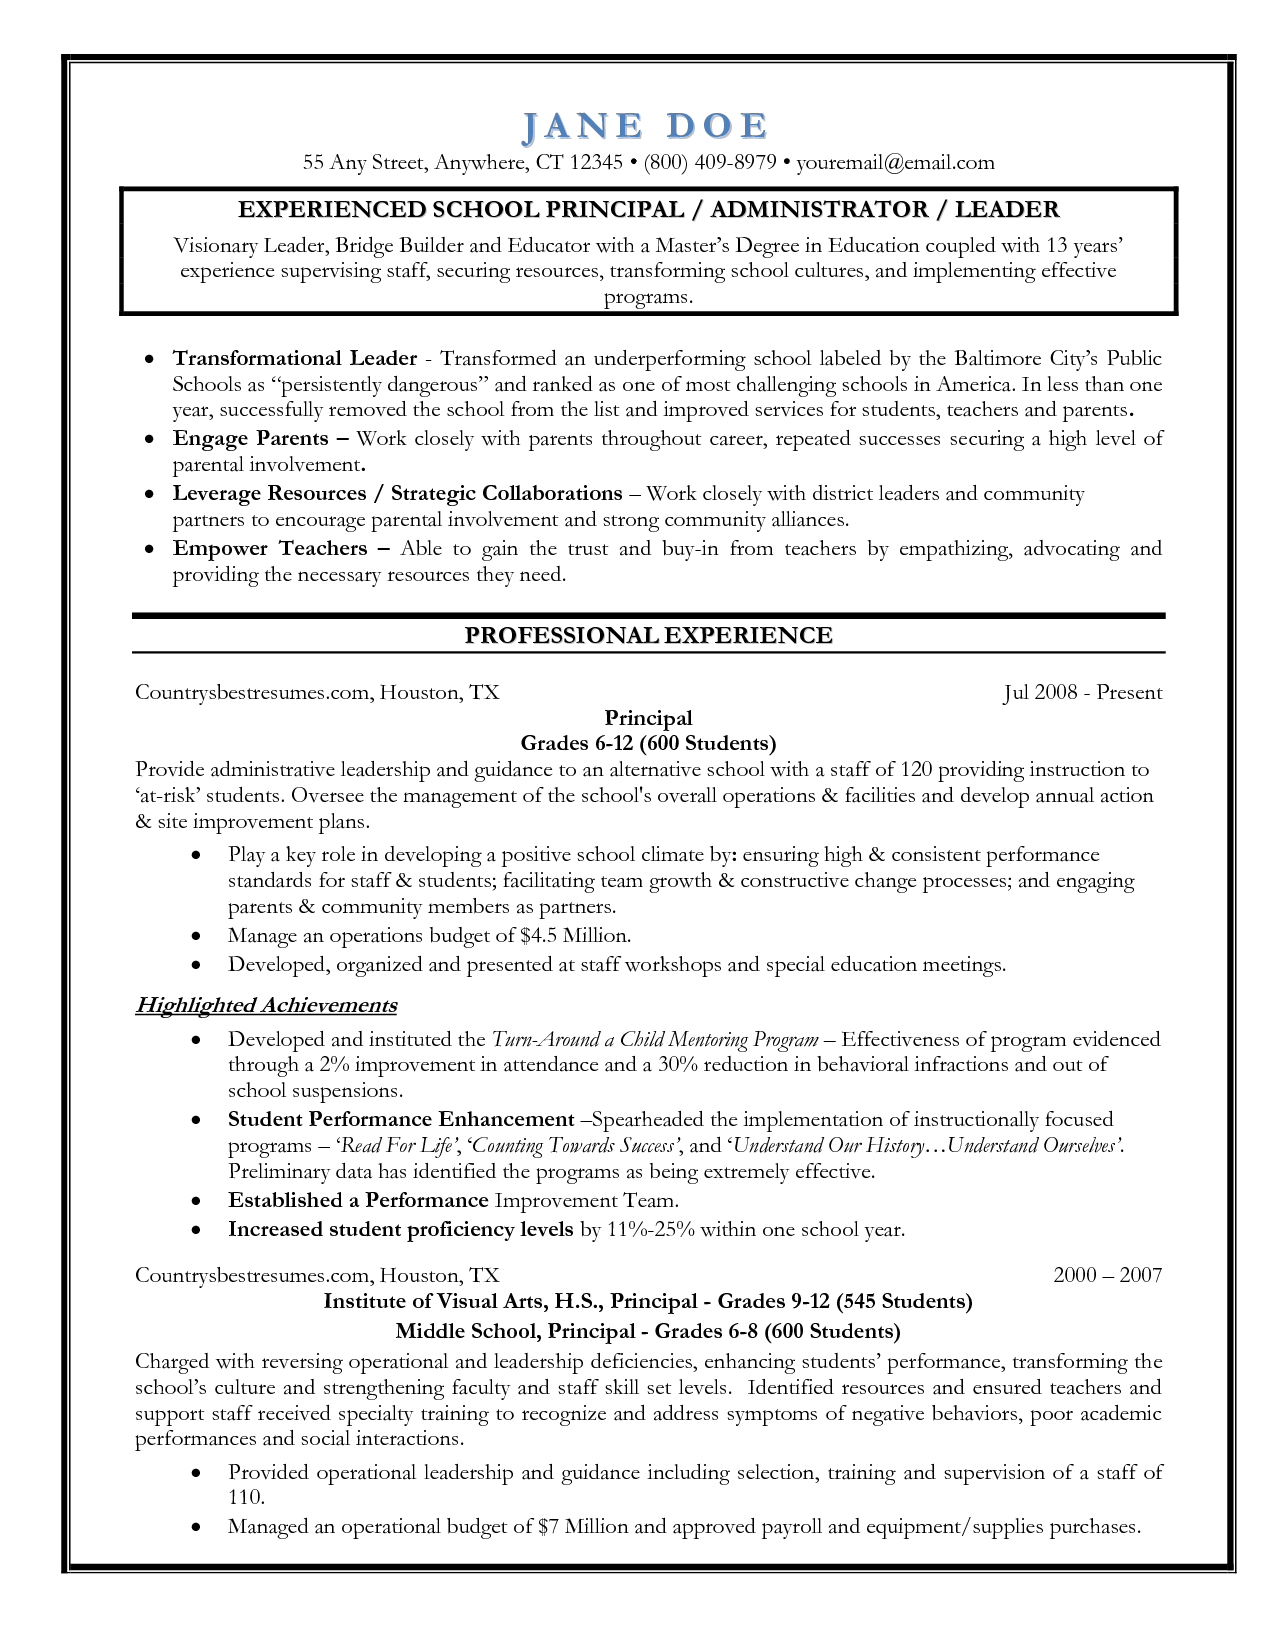 Elegant Entry Level Assistant Principal Resume Templates | Senior Educator   Principal  Resume Sample Within Resume For Assistant Principal